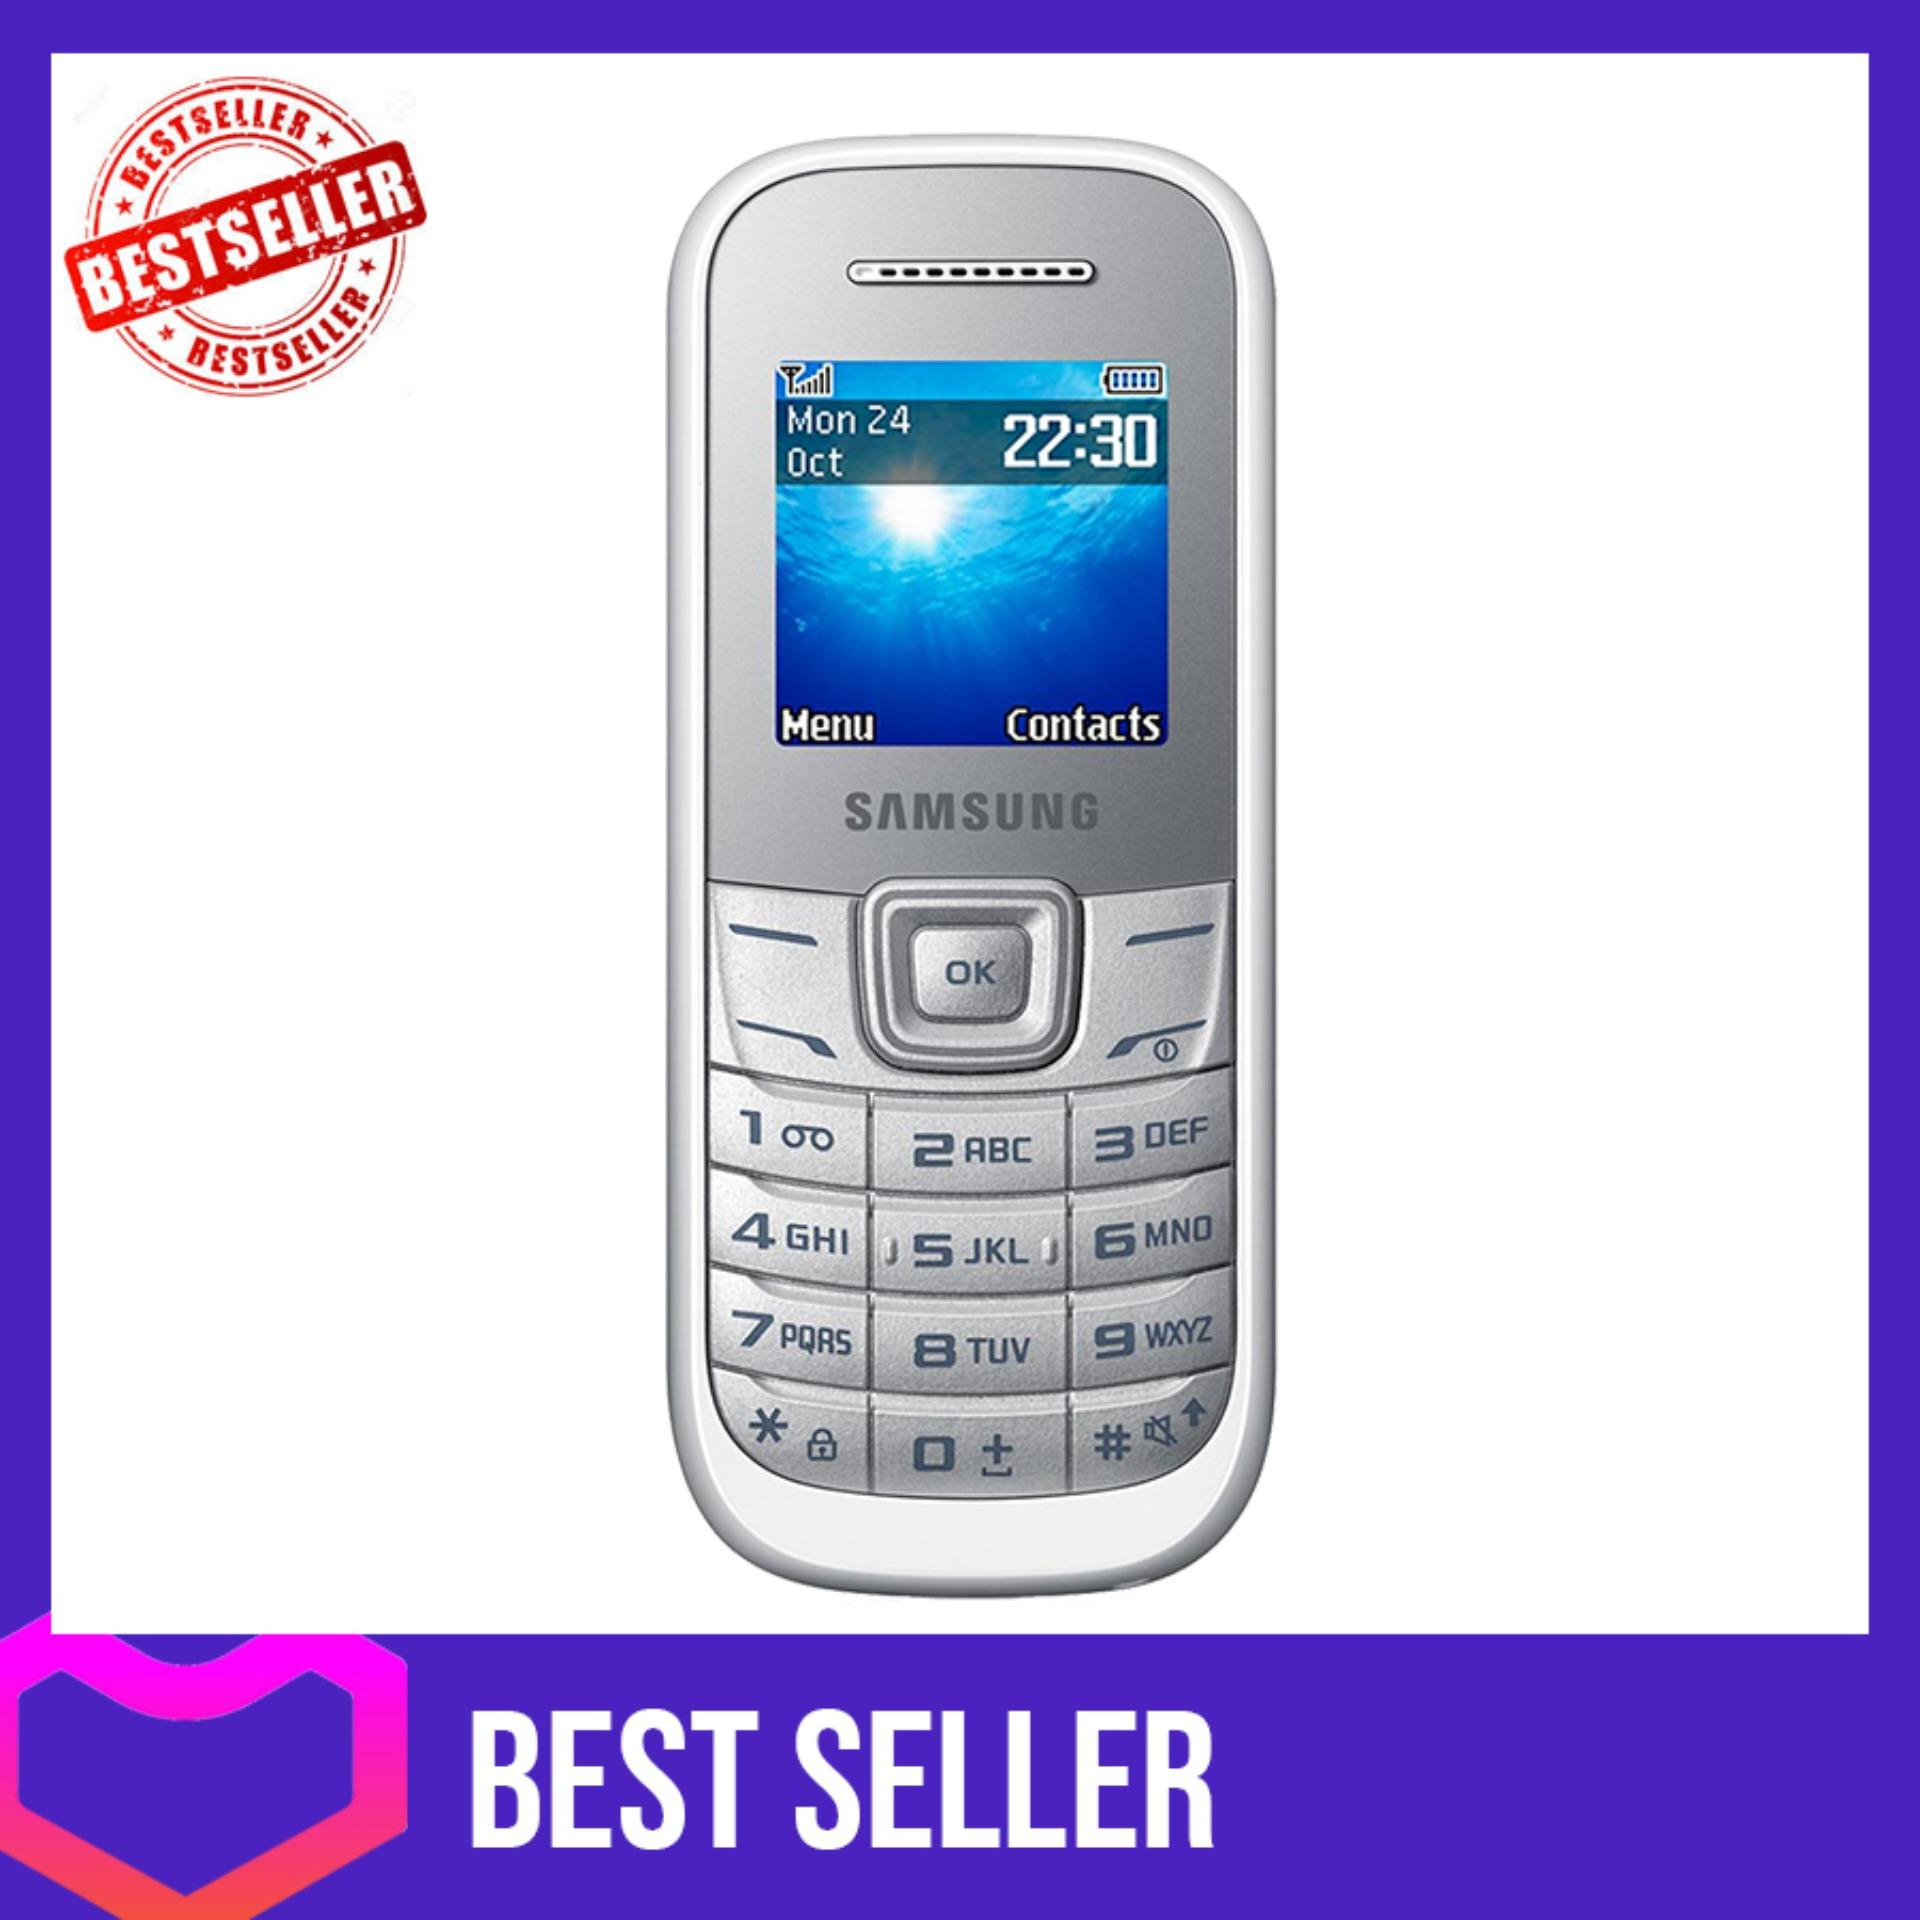 Samsung Keystone 2 E1205 Dual Sim Mobile Phone Grey By Better Goods.